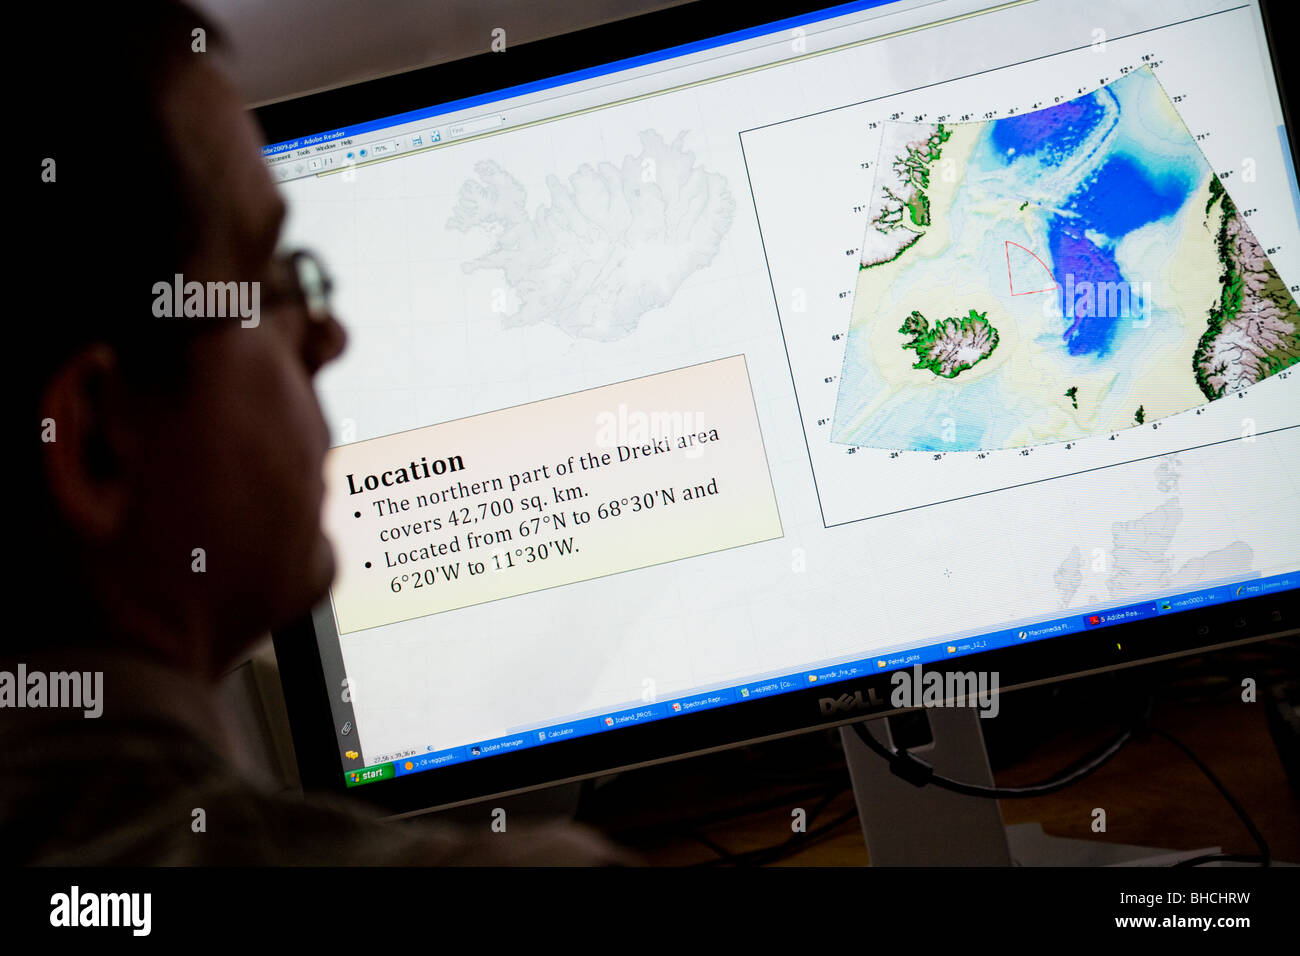 Thorarinn S. Arnarson, Oceanographer and Hydrocarbon Licensing Manager, shows a map of the Dreki area. NEA in Reykjavik, - Stock Image